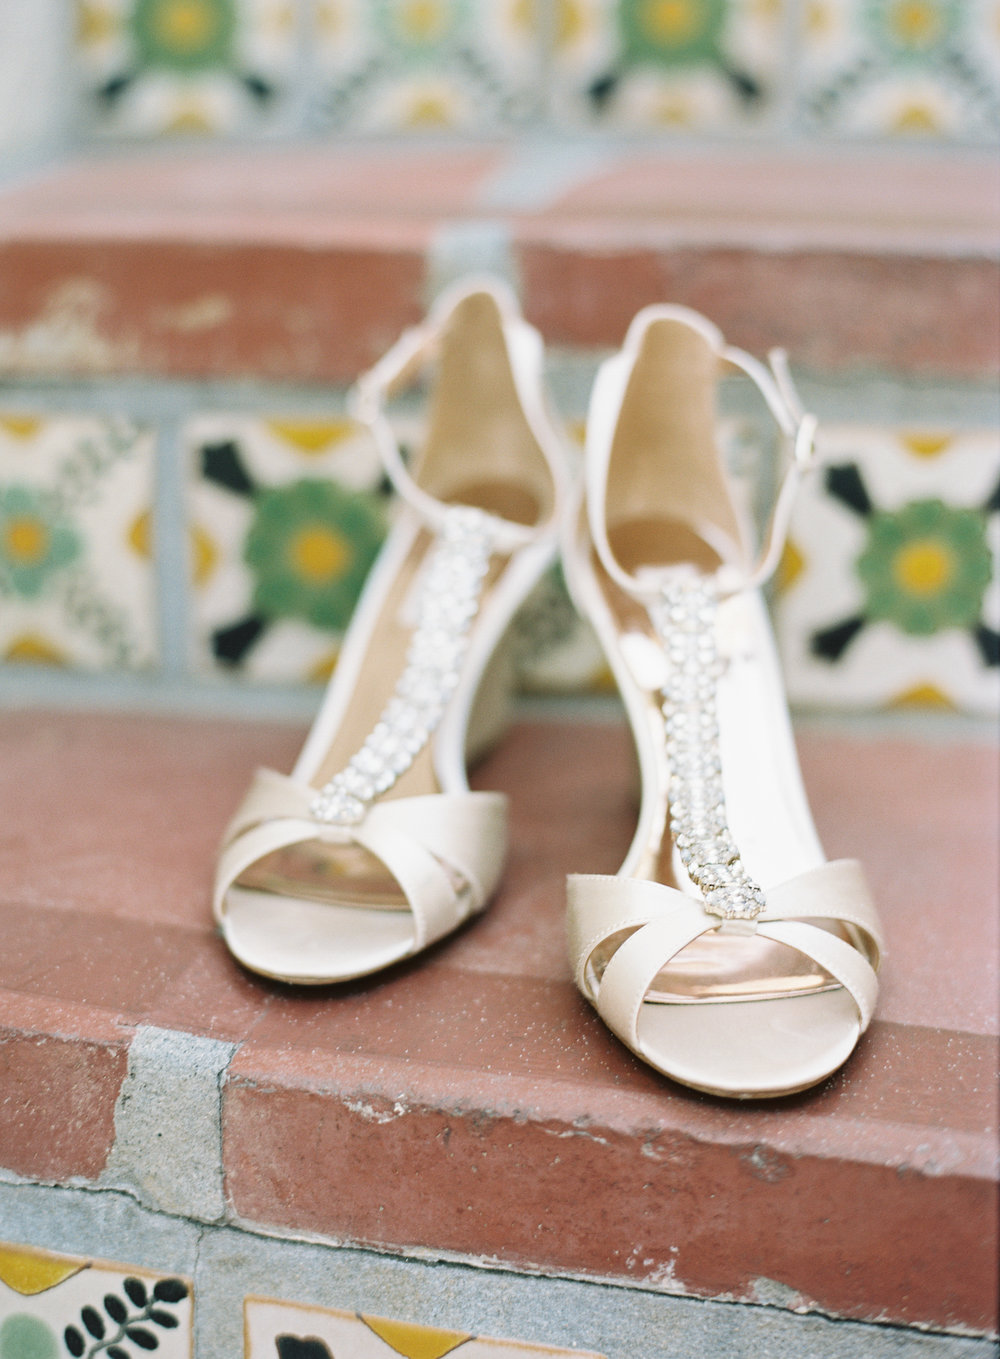 www.santabarbarawedding.com | Ashley Kelemen Photography | Four Seasons Santa Barbara | Bride's Shoes